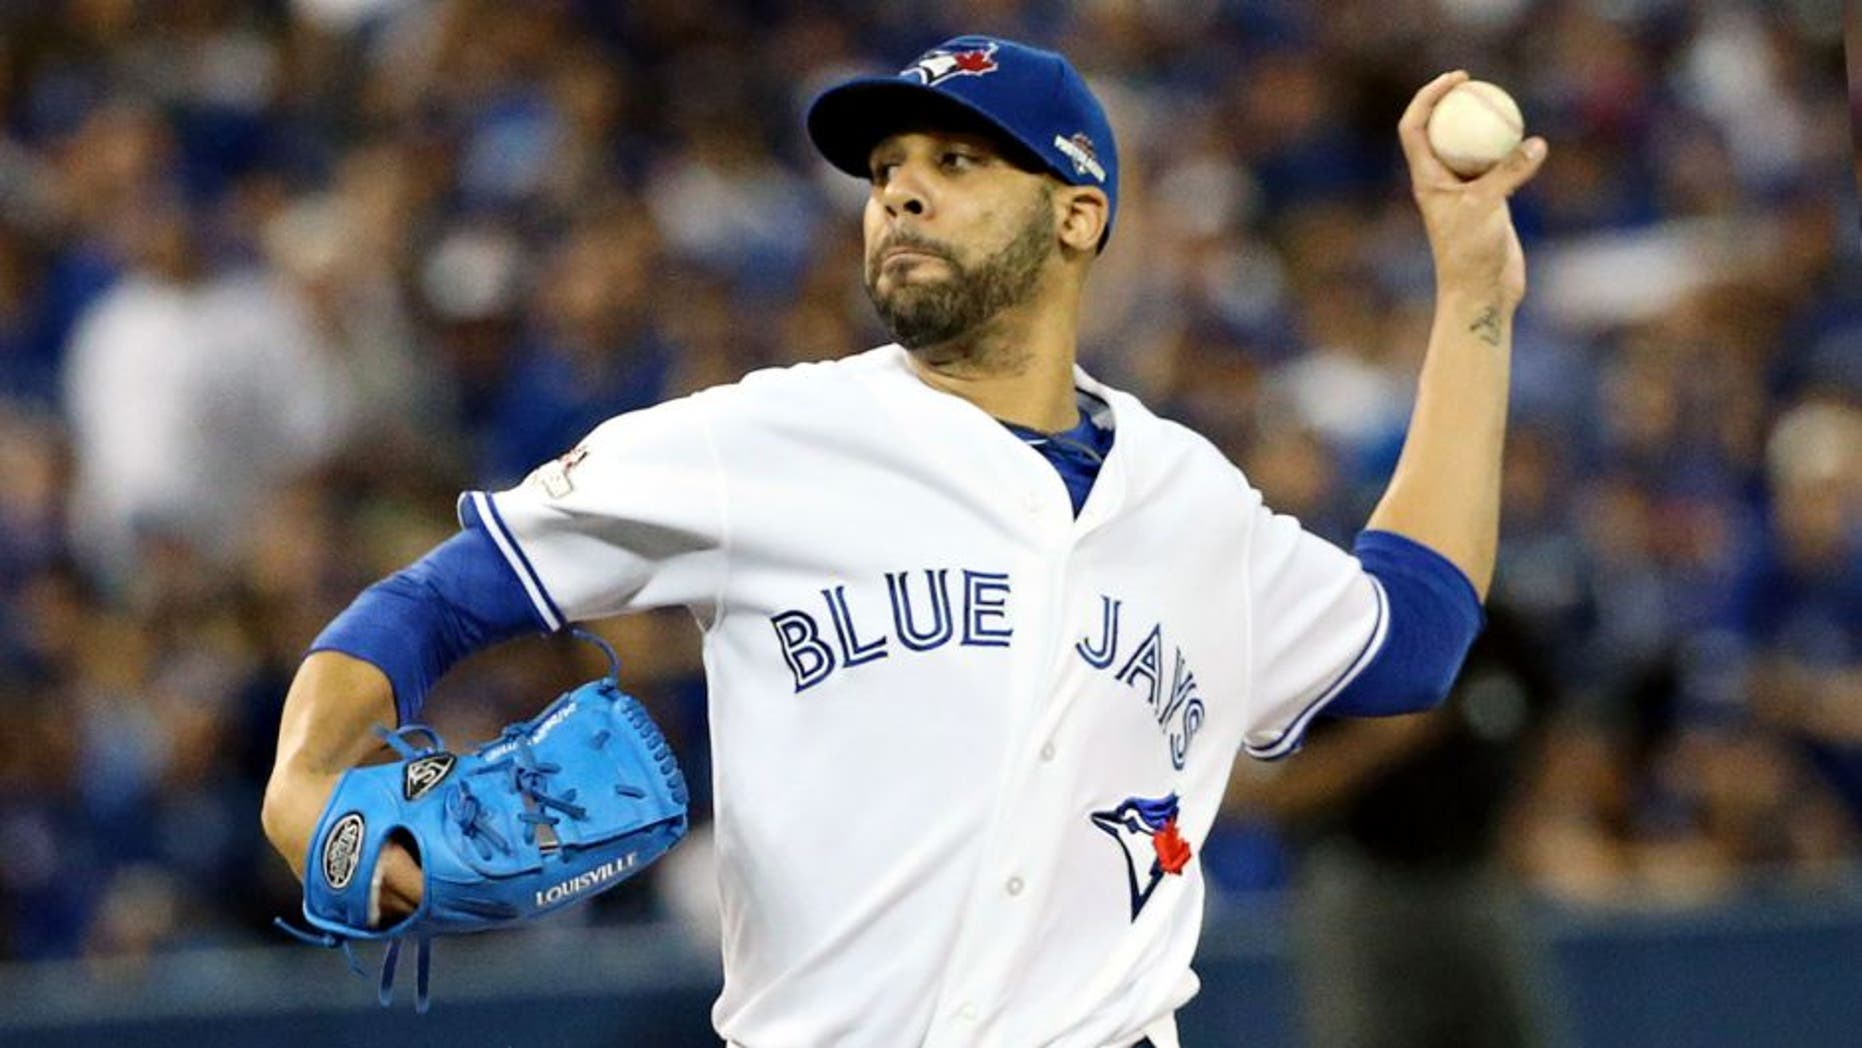 TORONTO, ON - OCTOBER 8: Toronto Blue Jays pitcher David Price pitches to the Texas Rangers during the first inning in Game 1 of MLB's ALDS baseball series in Toronto October 8, 2015. Steve Russell/Toronto Star/Toronto Star (Steve Russell/Toronto Star via Getty Images)